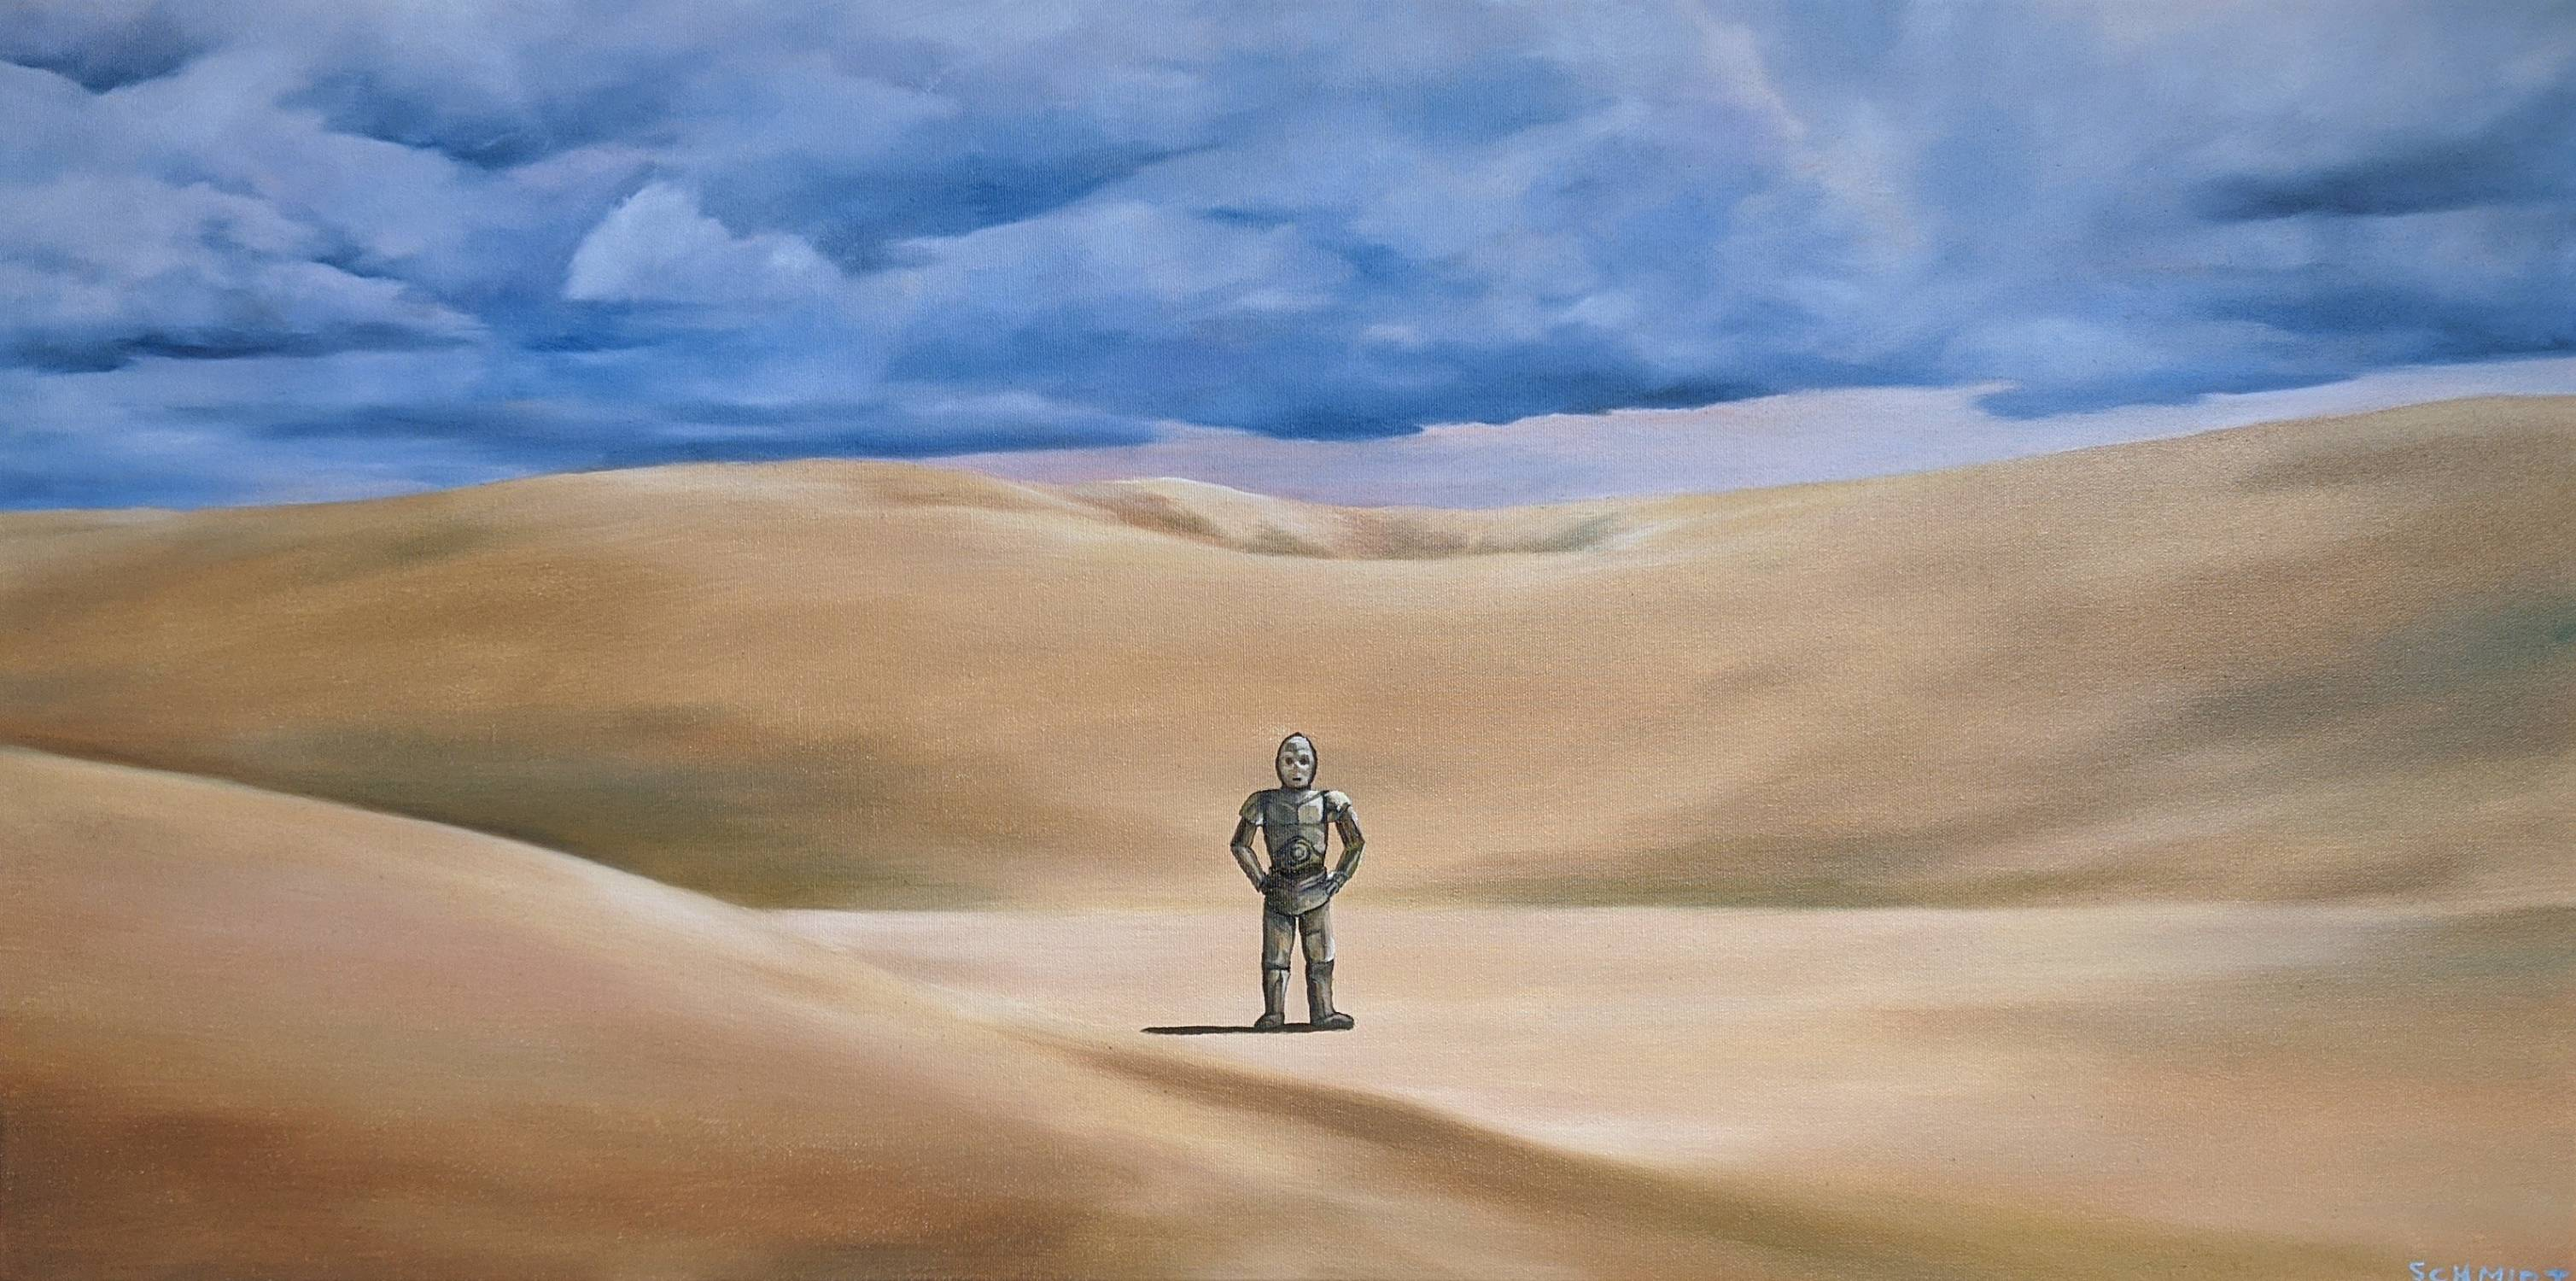 I made an oil painting of my favorite frame of C-3PO from A New Hope